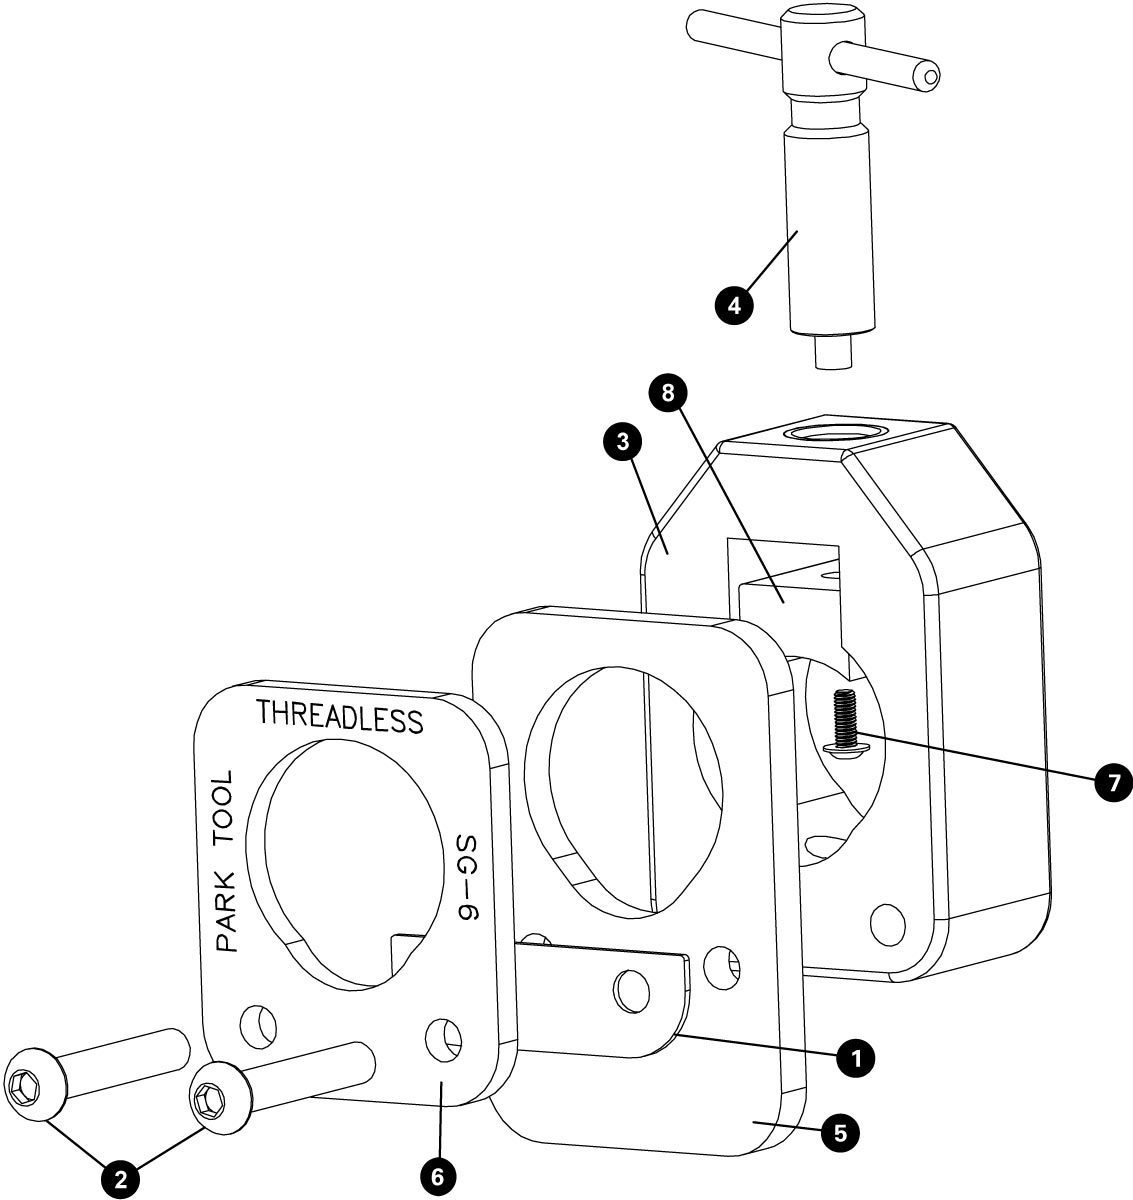 Parts diagram for SG-6 Threadless Saw Guide, click to enlarge